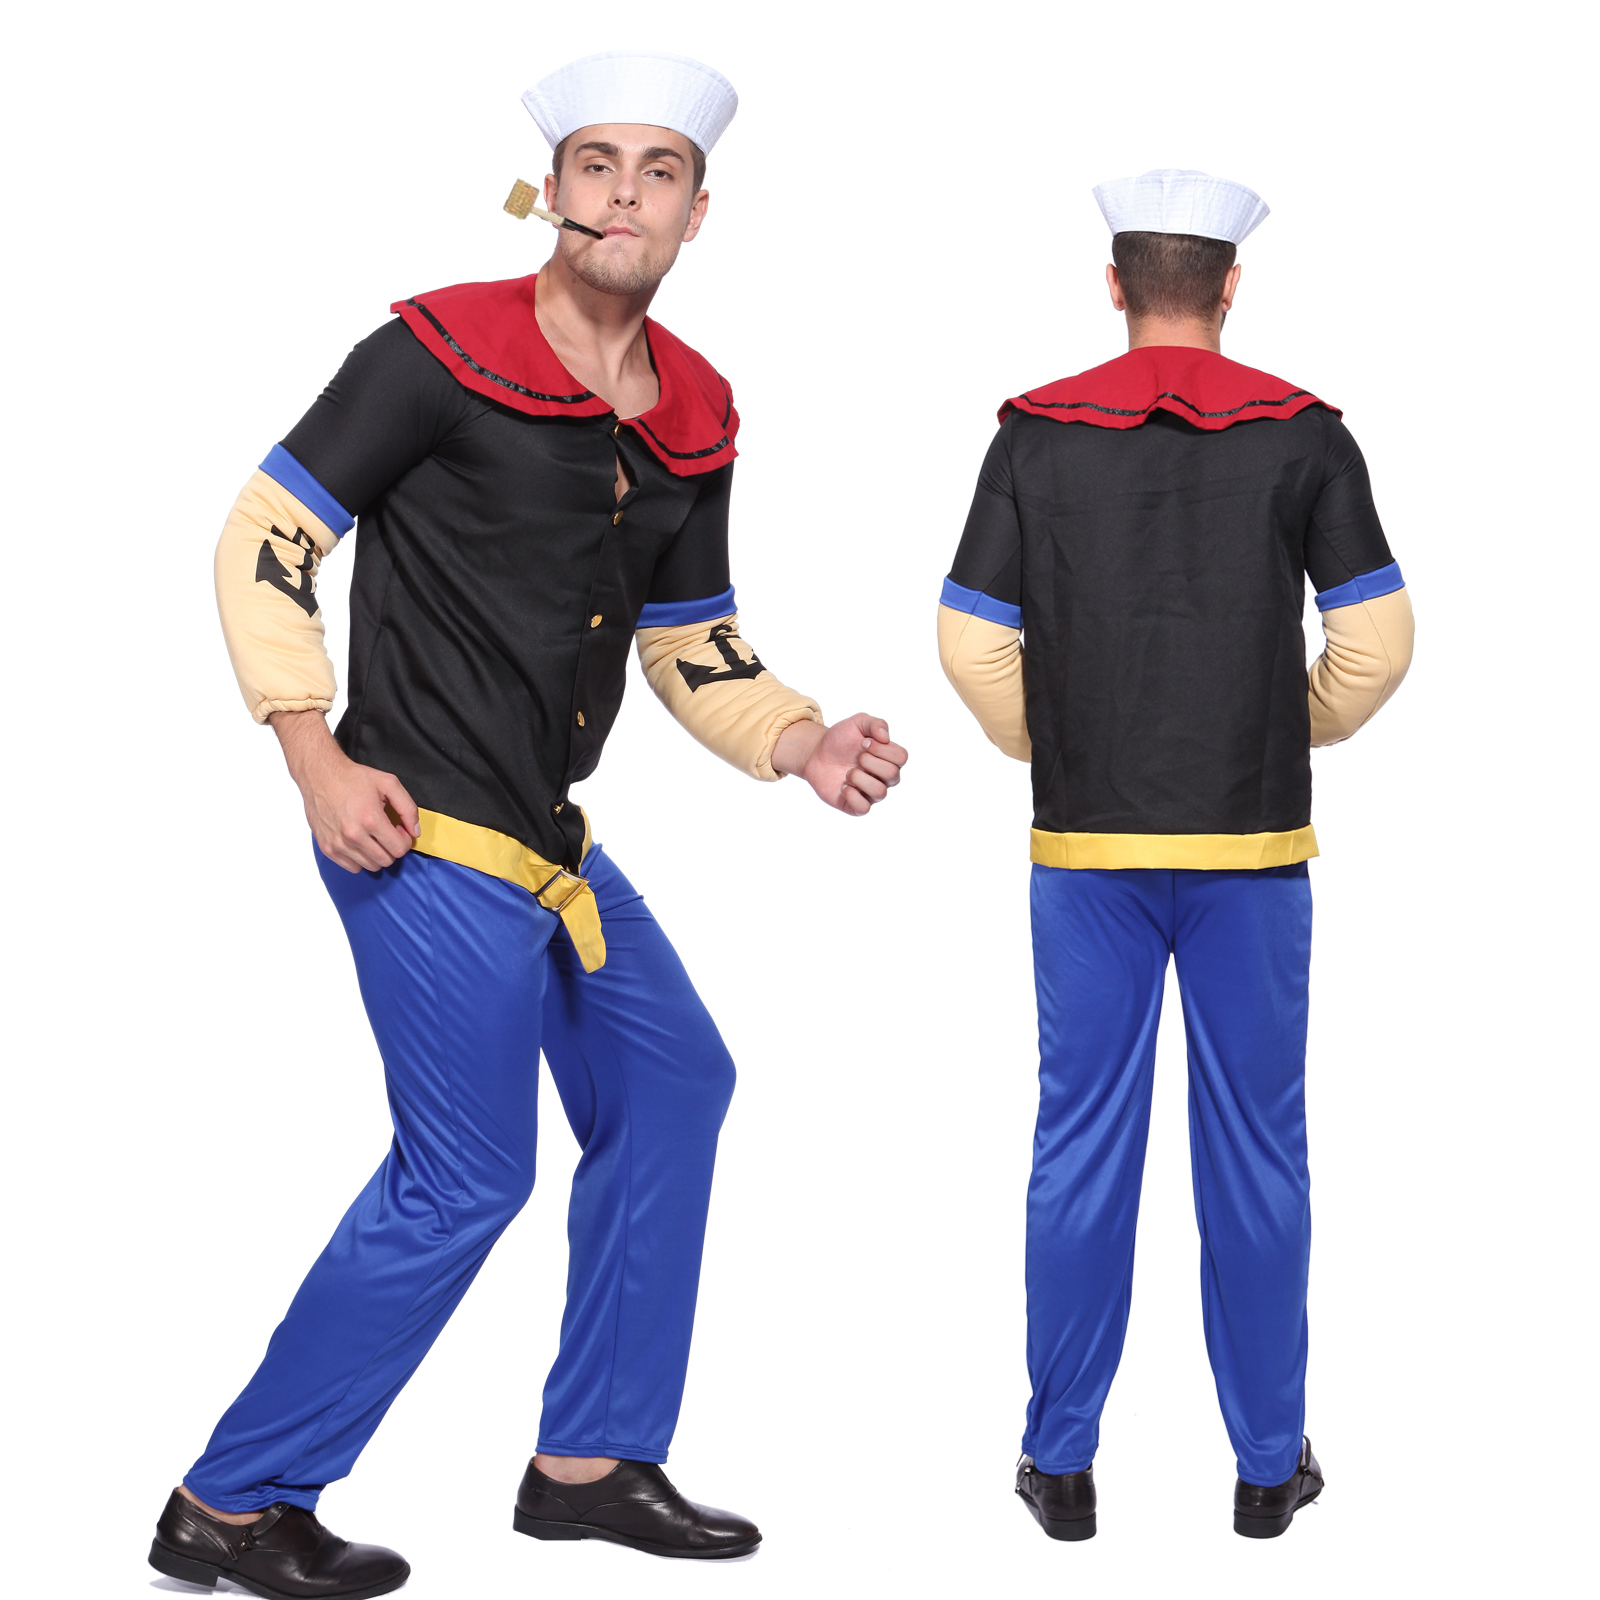 lustig herren karneval verkleidung popeye kost m matrose der seemann gr e m ebay. Black Bedroom Furniture Sets. Home Design Ideas